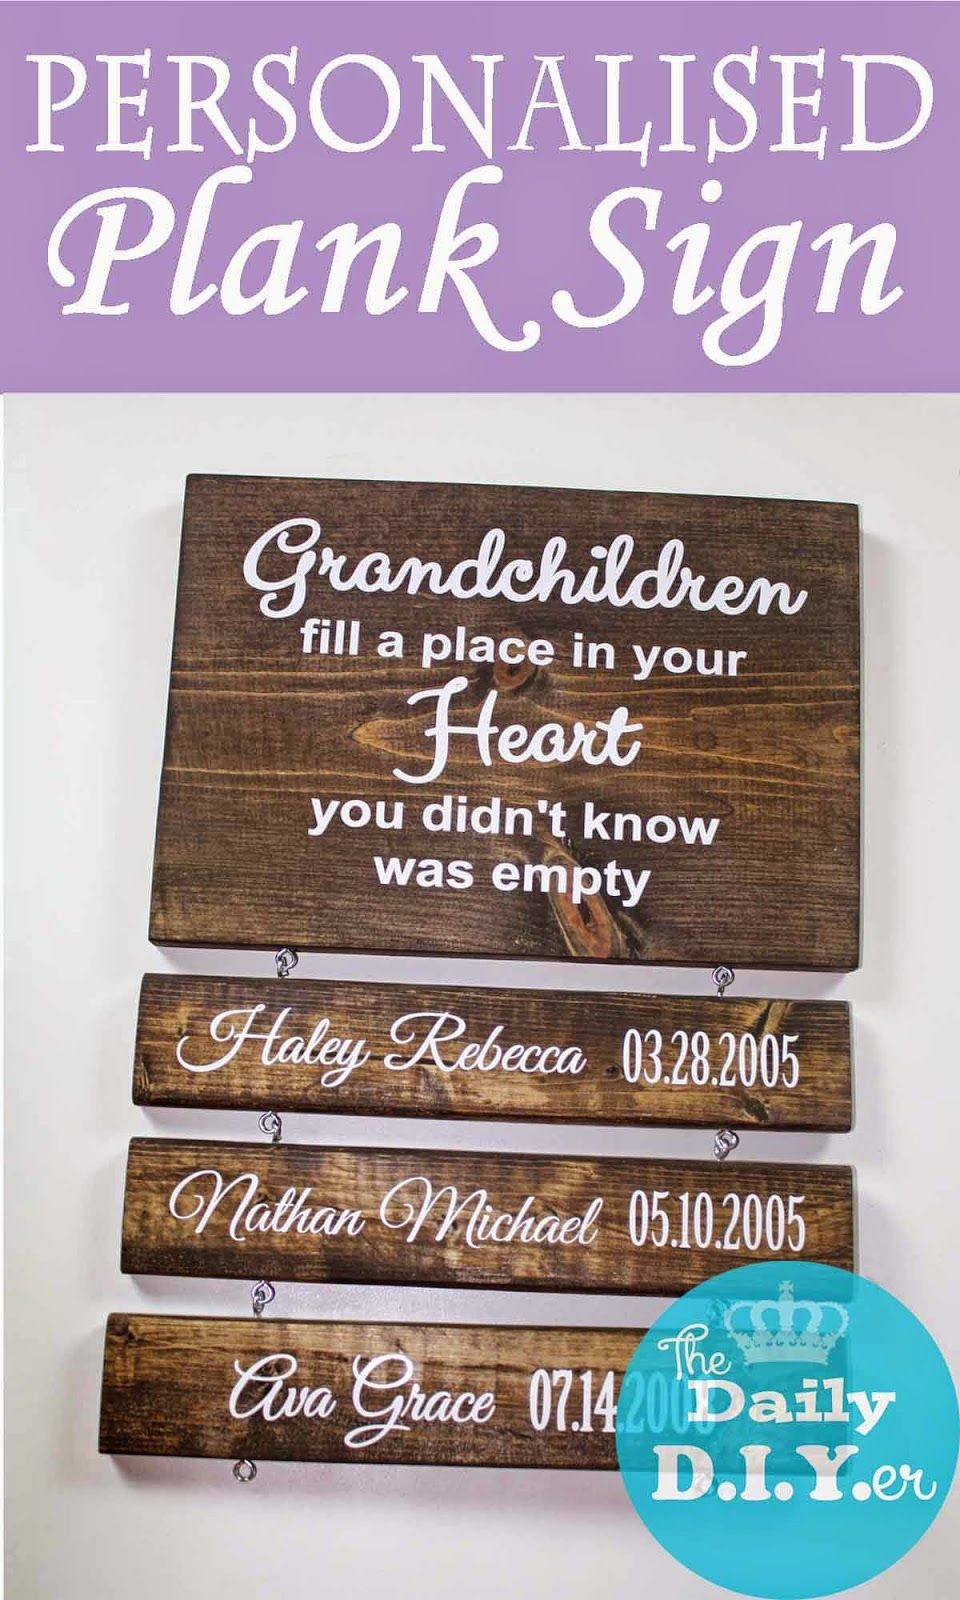 wooden sign with personalized wooden planks would make a great